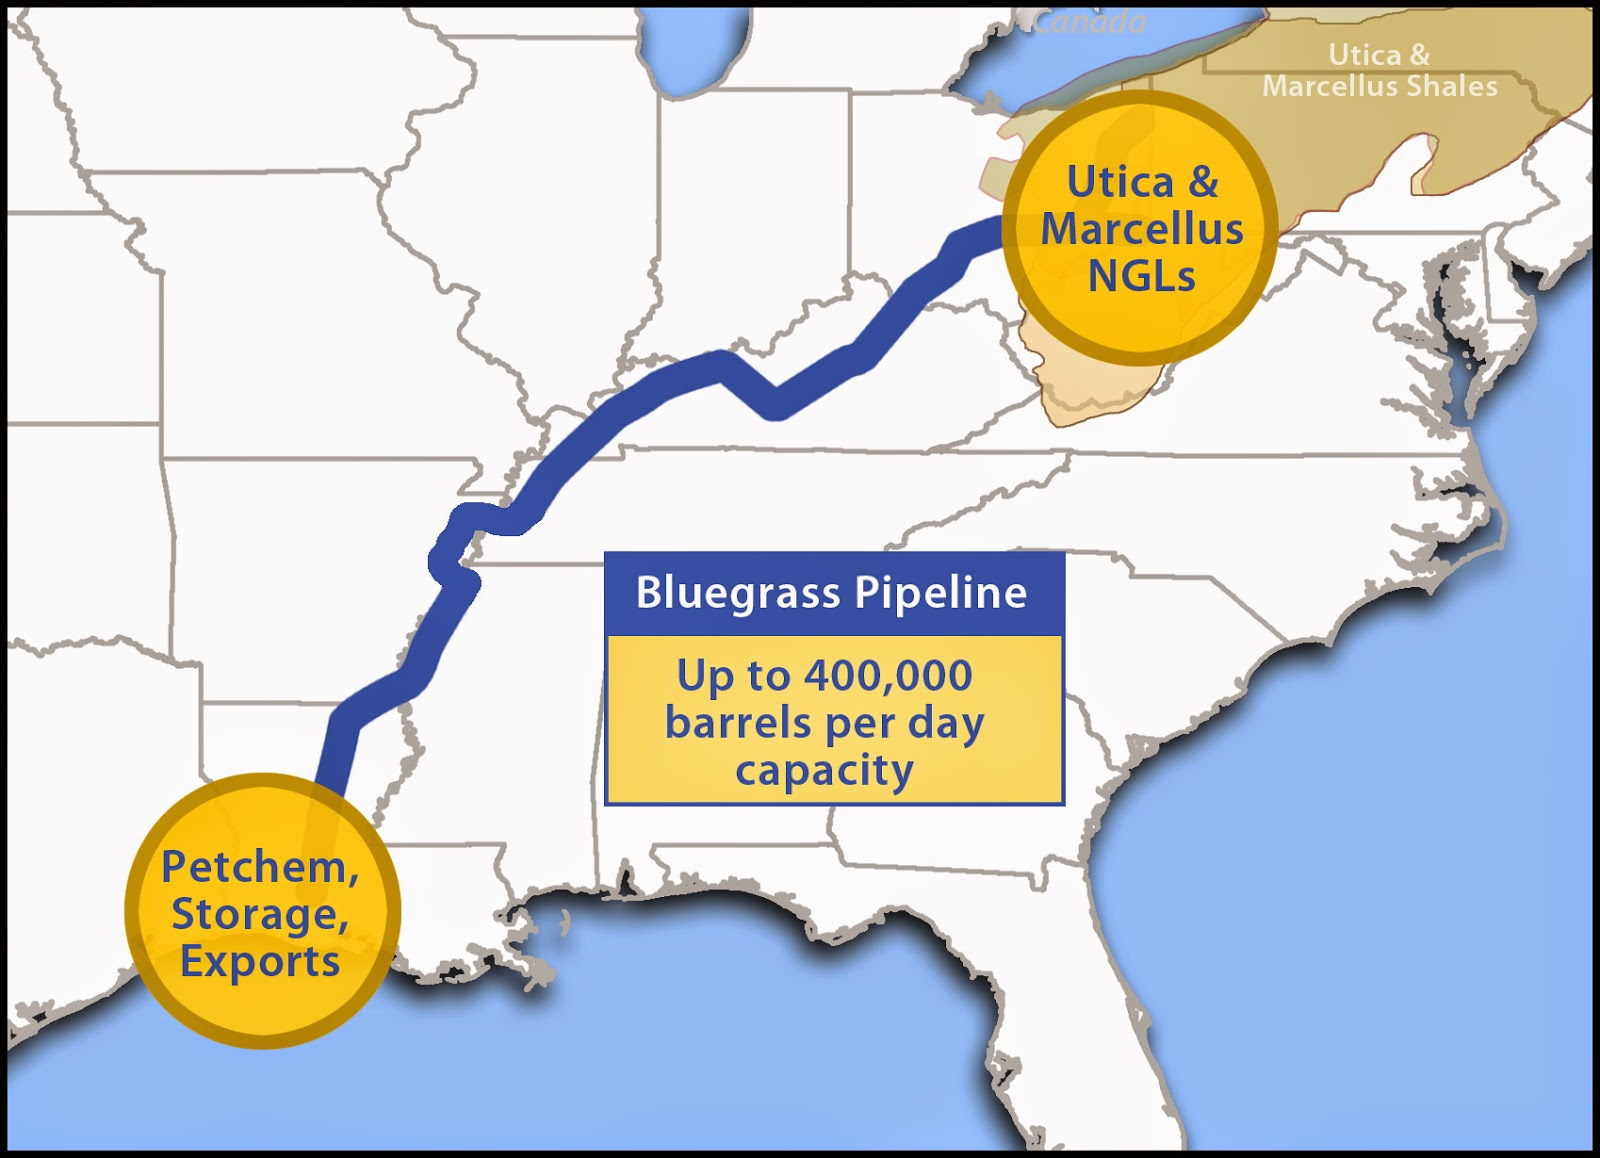 williams corporation wants to build the bluegrass pipeline through ohio and kentucky and farther southeast to export markets in another project dominion